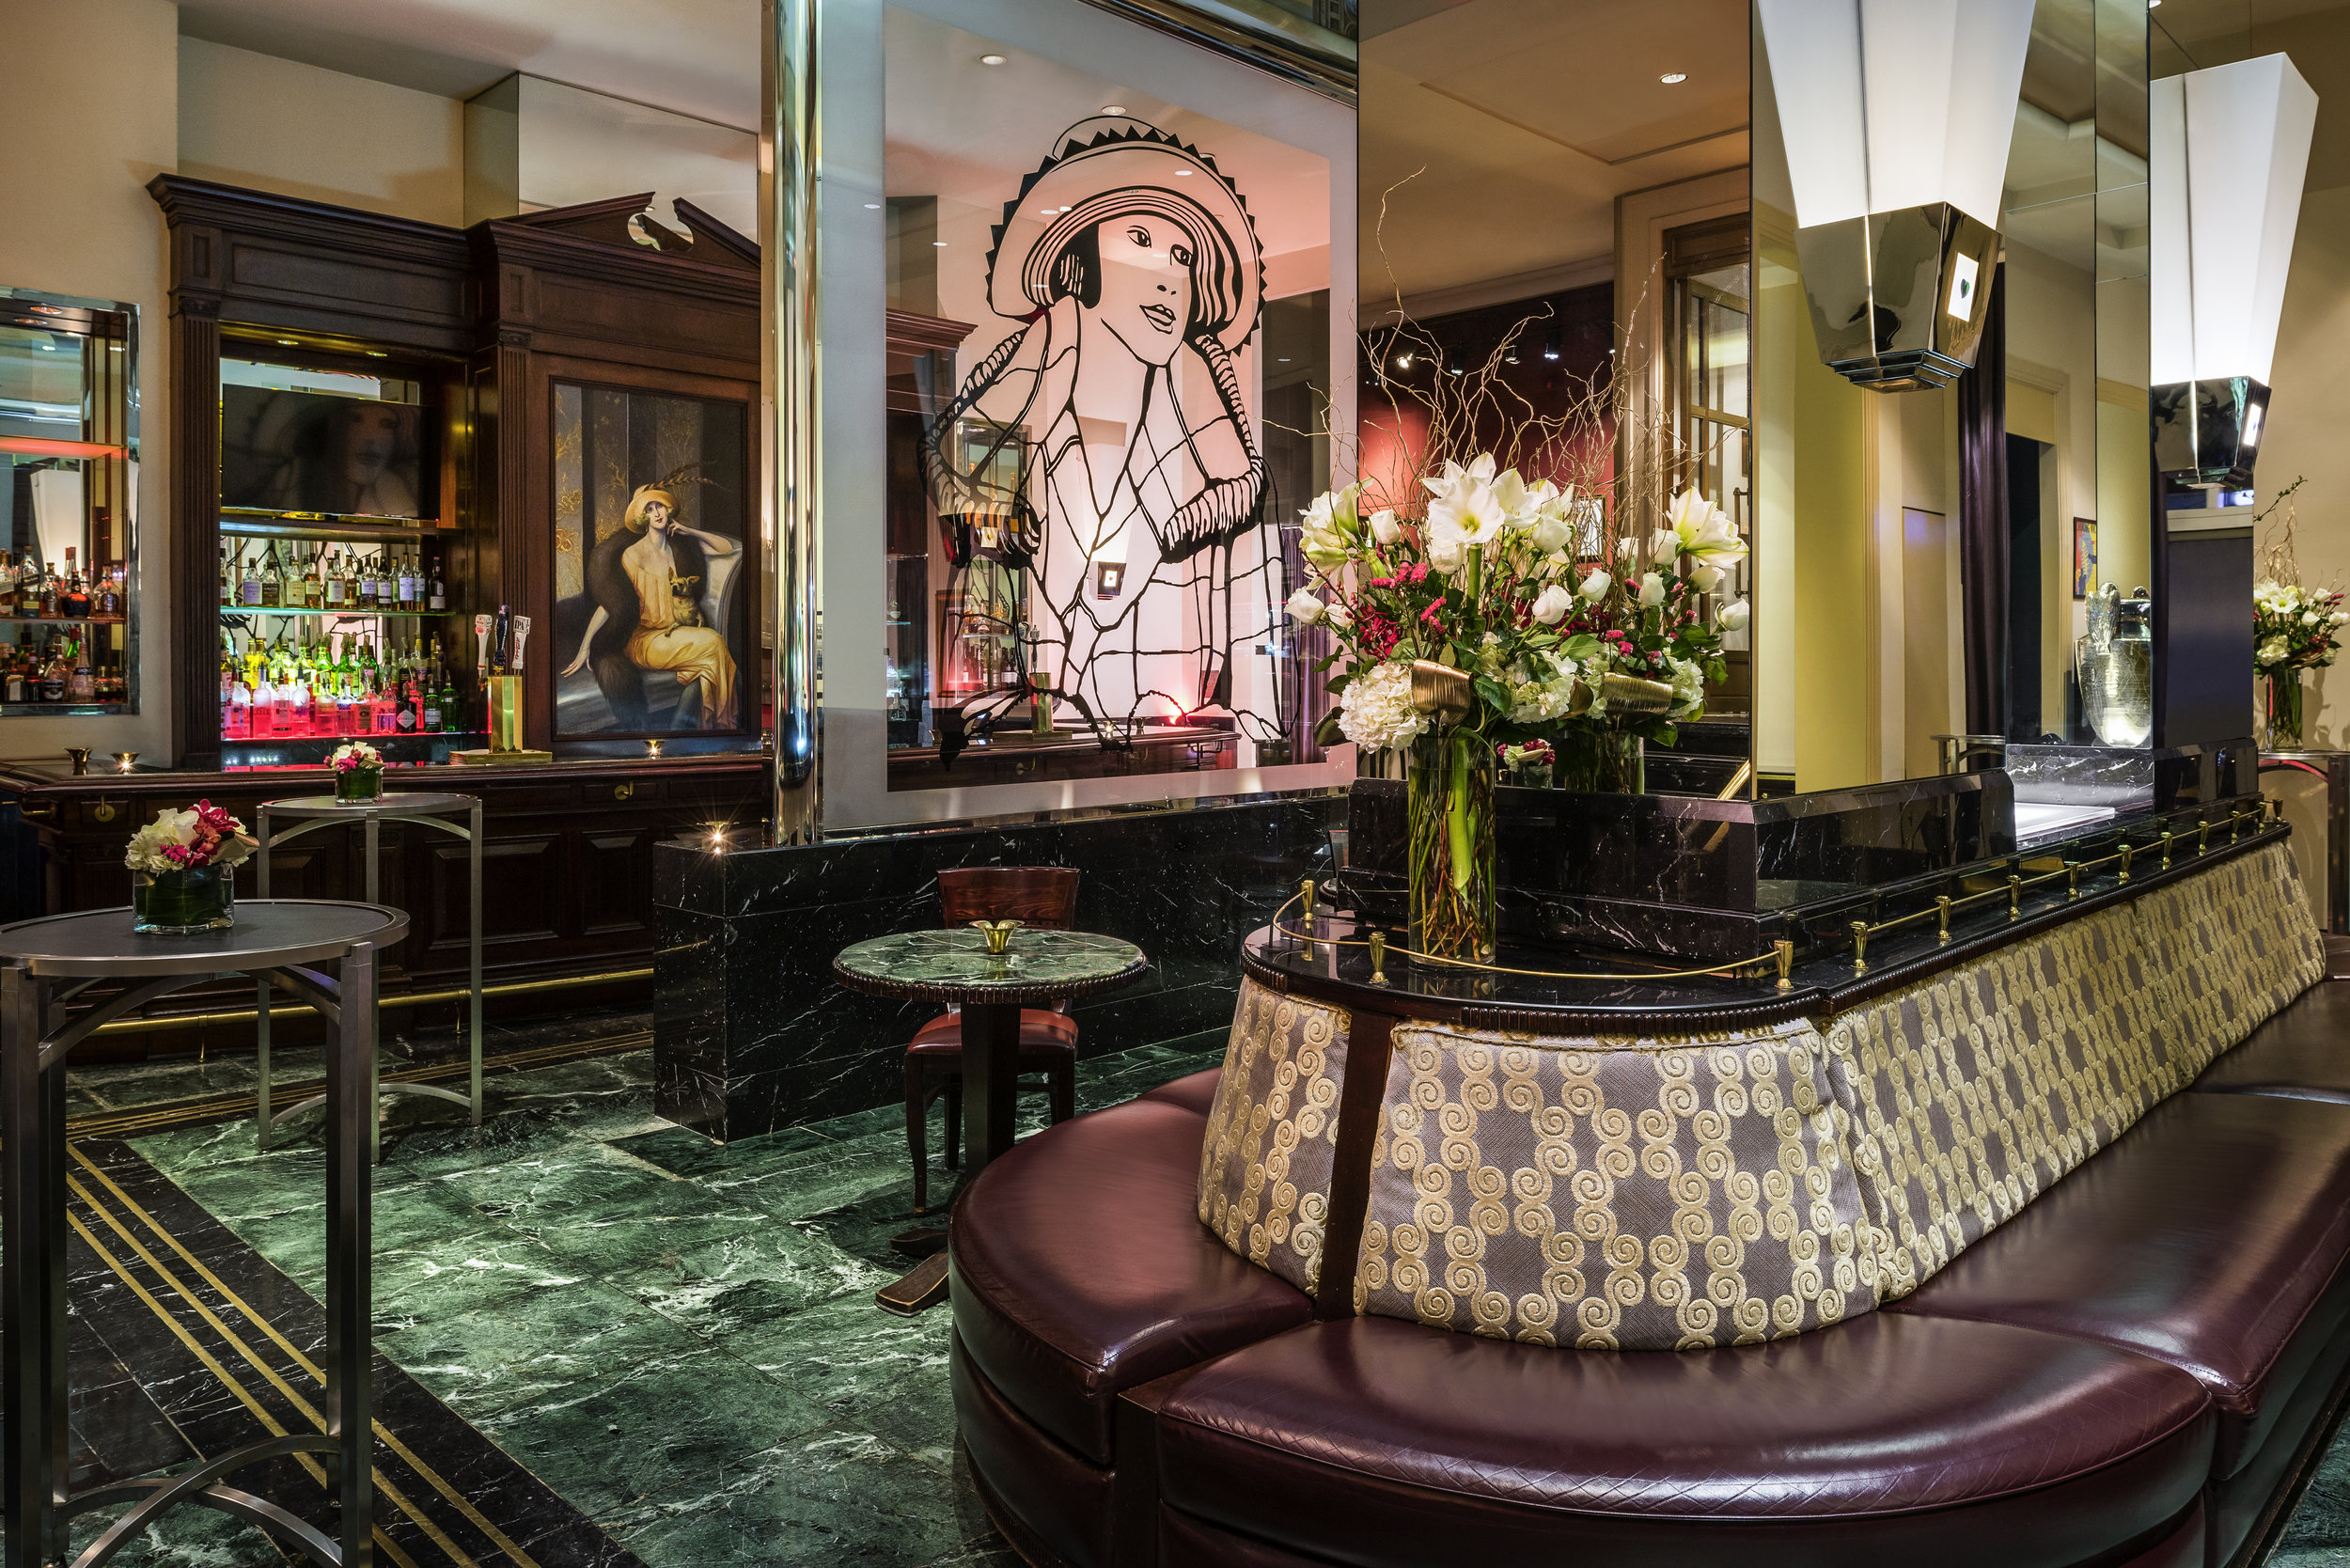 living room theater drink menu large wall clocks photo gallery nyc french restaurant gaby ny brasserie home menus daily bottomless brunch winter week valentine s day menuprivate eventshappenings hours